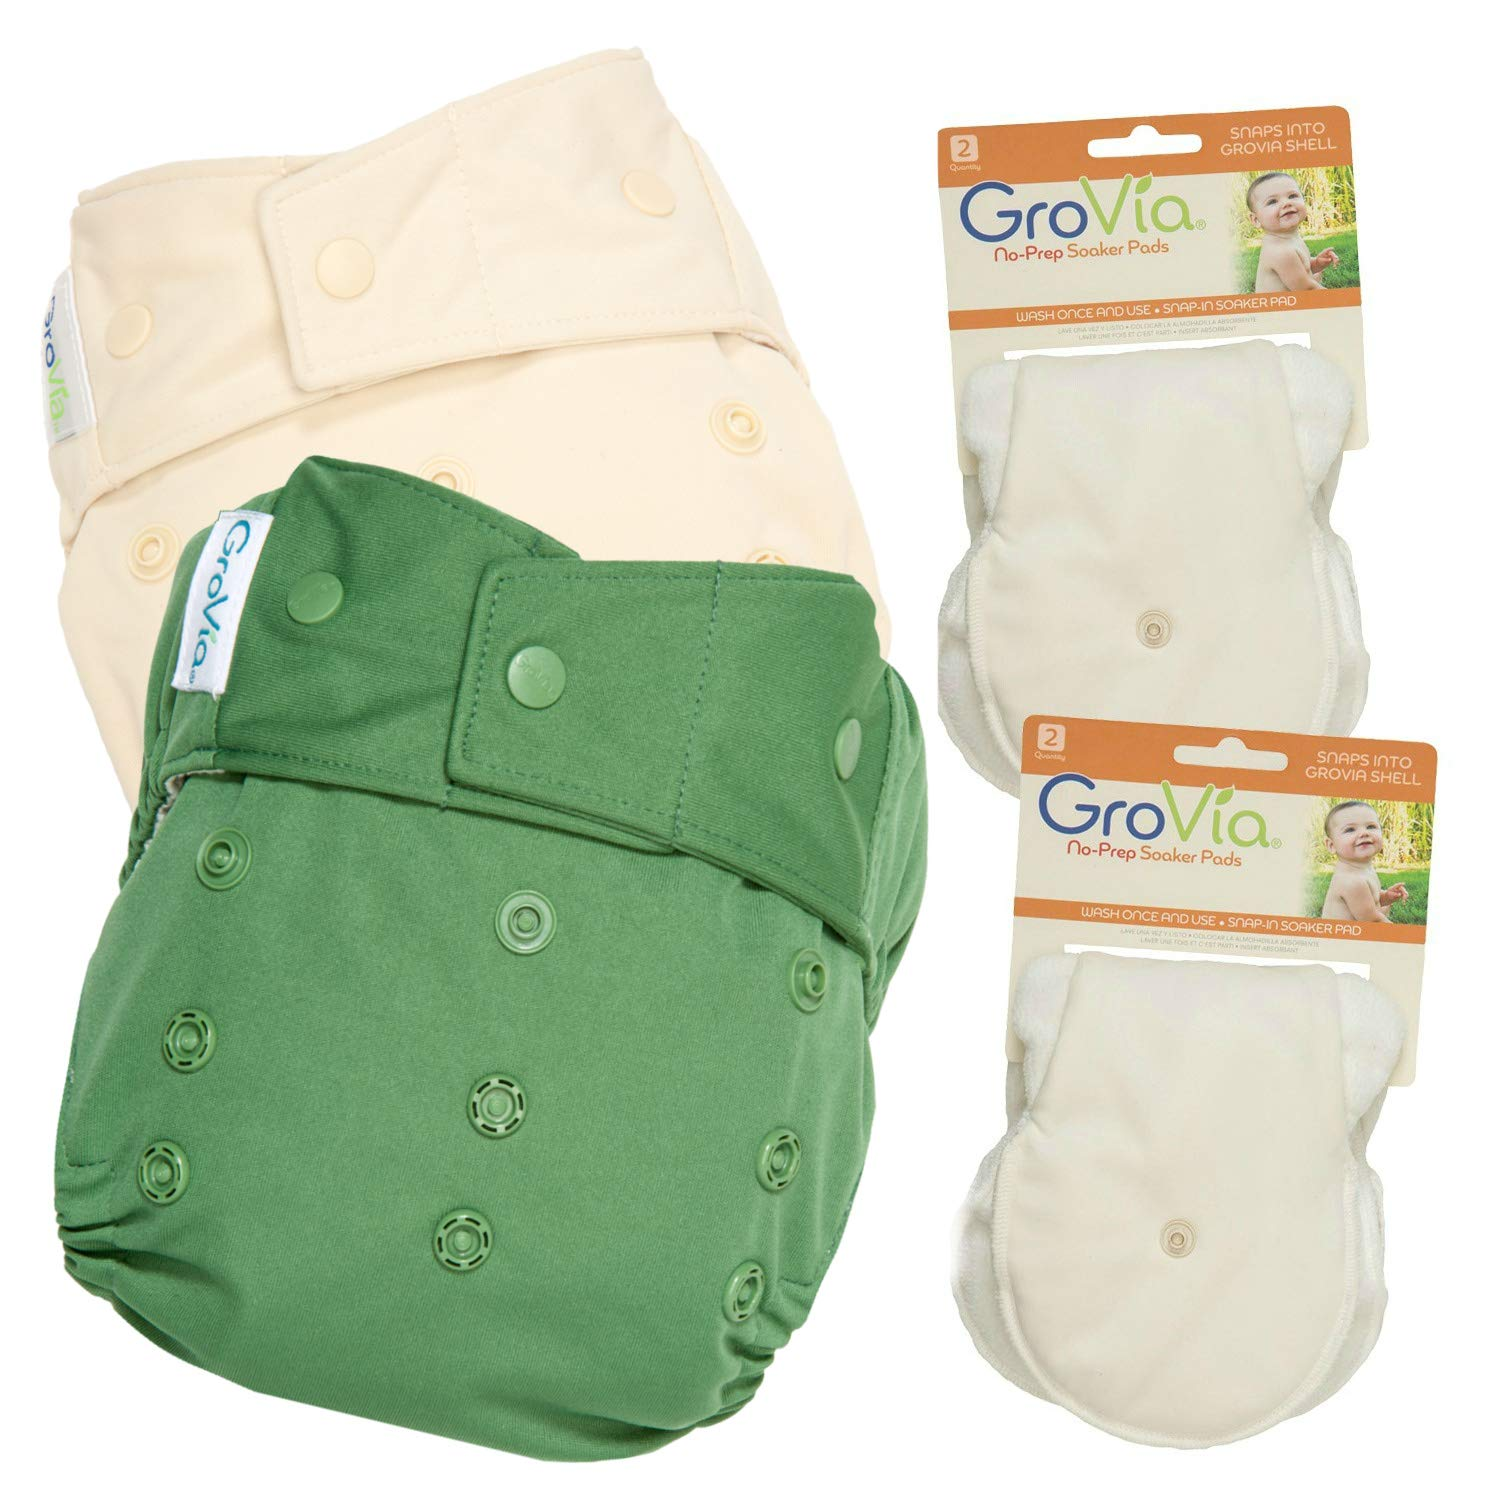 GroVia Experience Package: 2 Shells + 4 No Prep Soaker Pads (Color Mix 2 Snap)